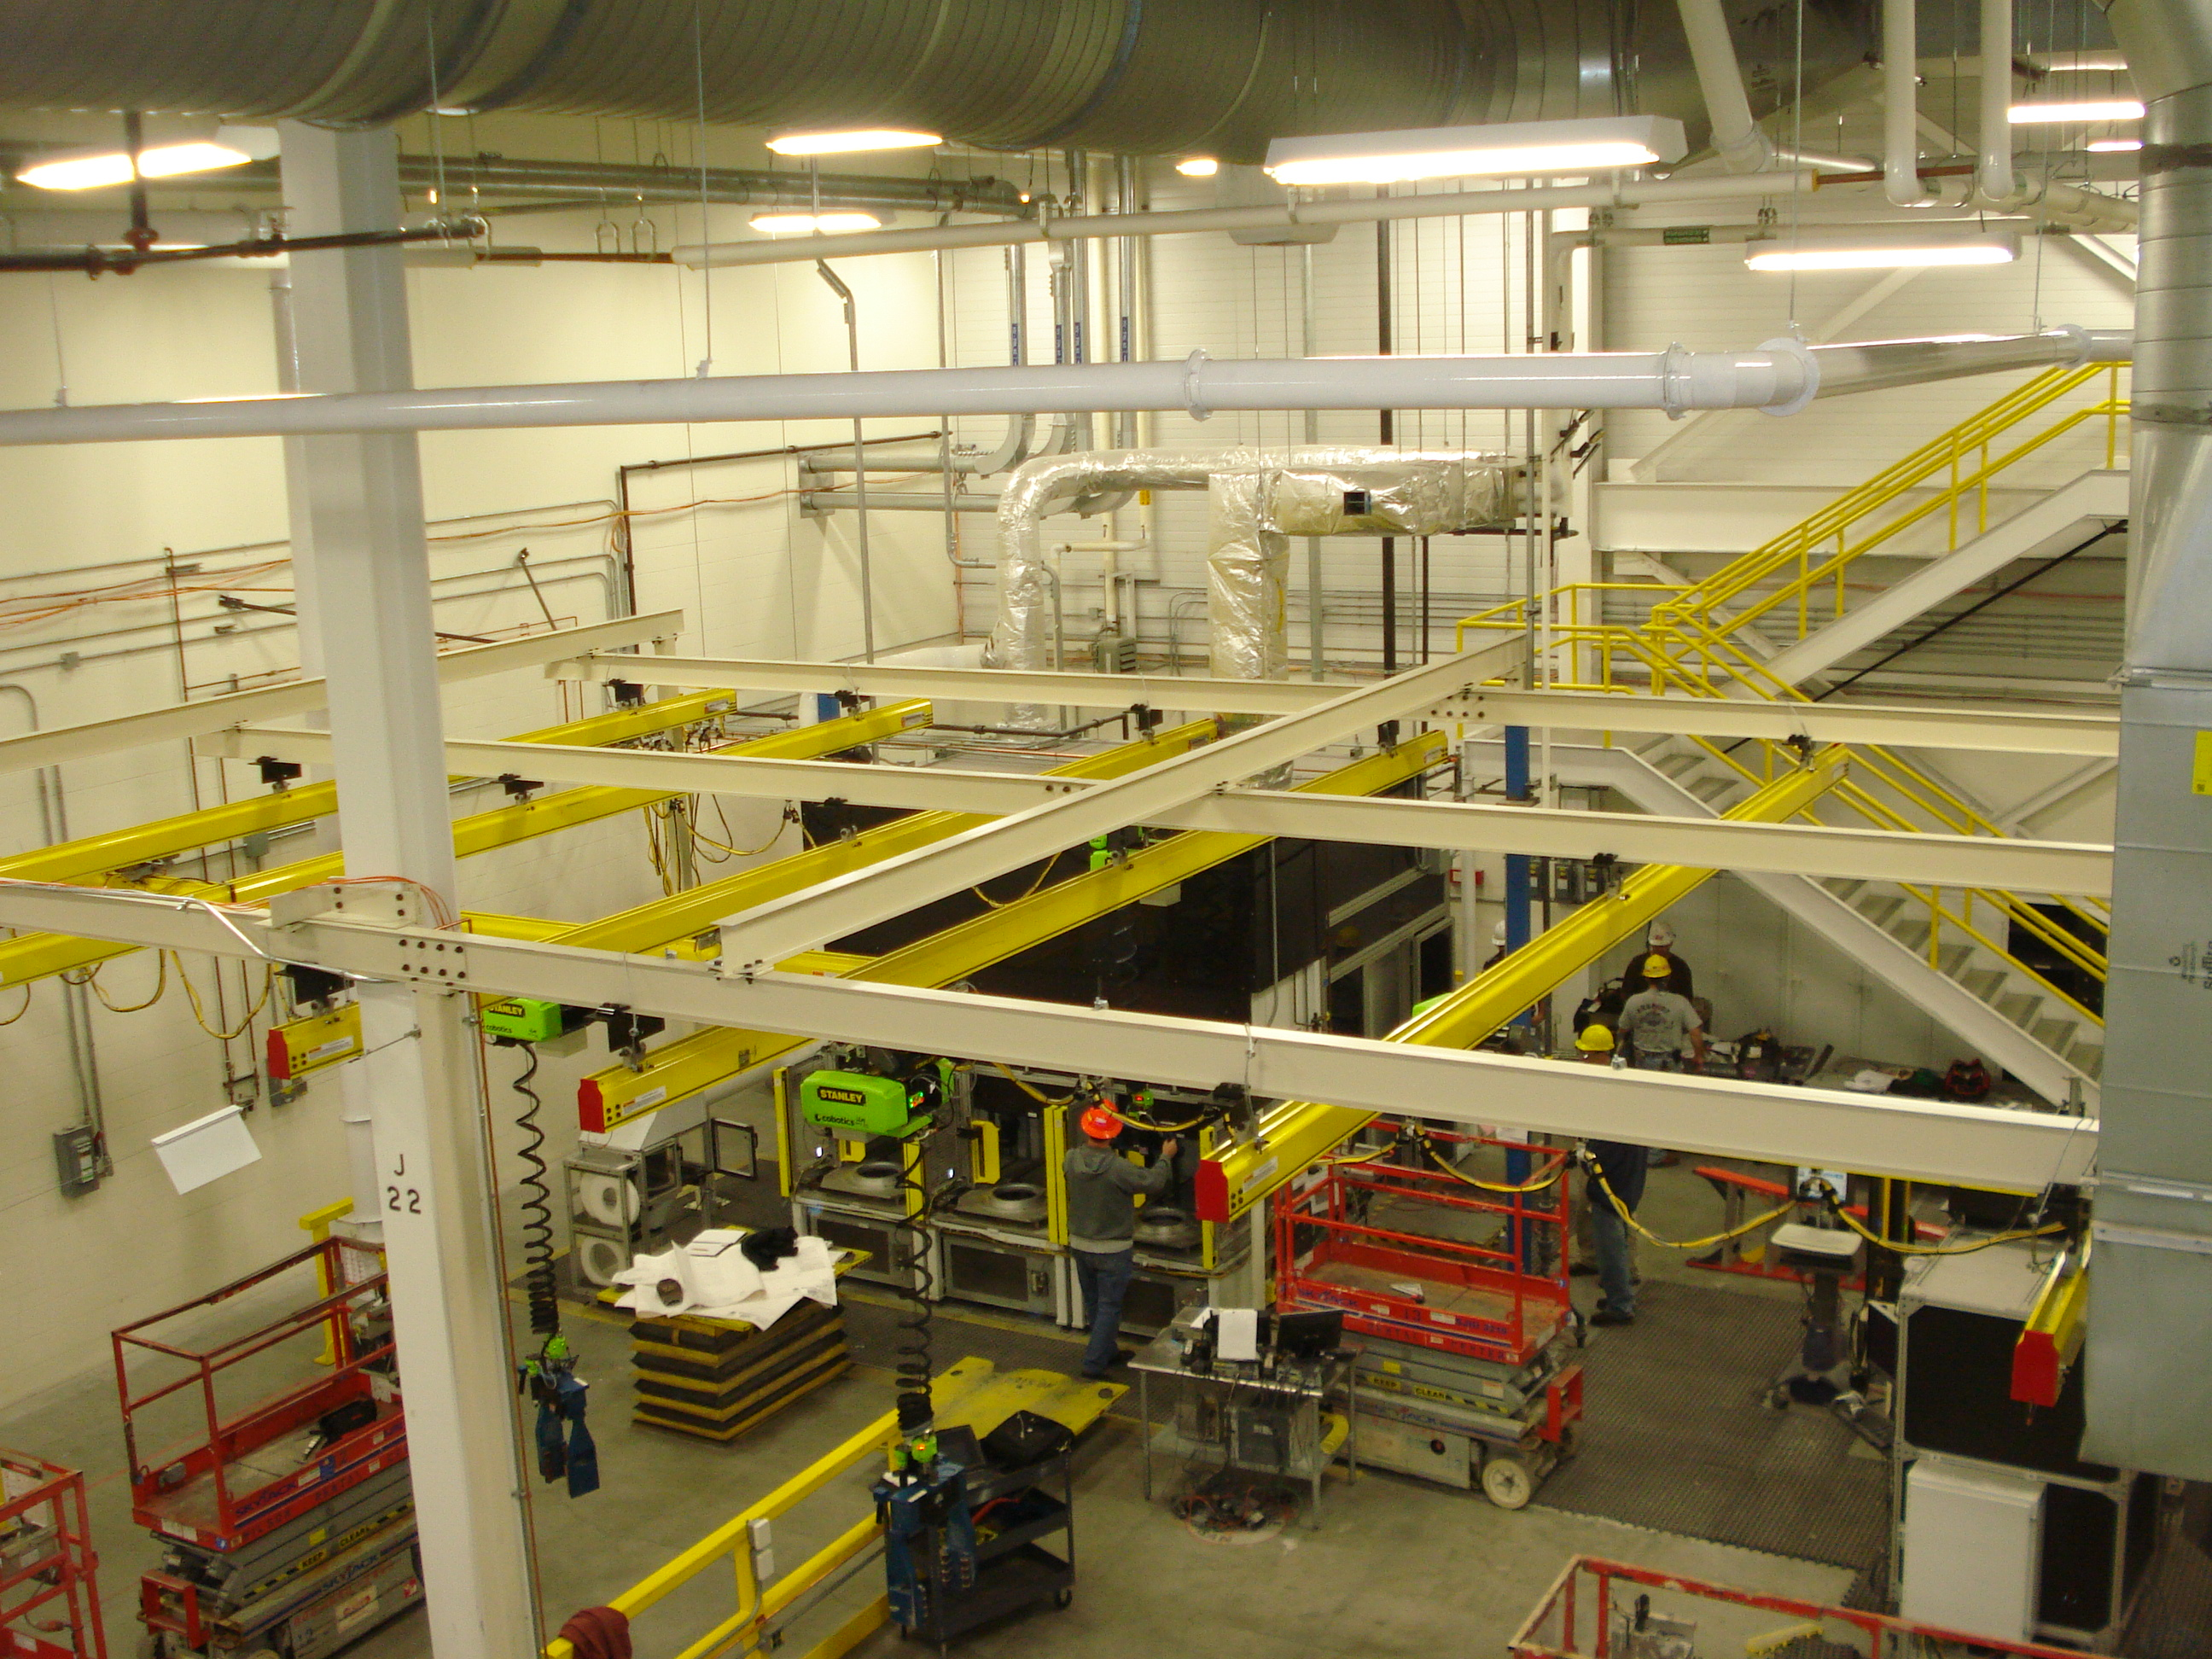 Safety First: Light Duty Overhead Cranes